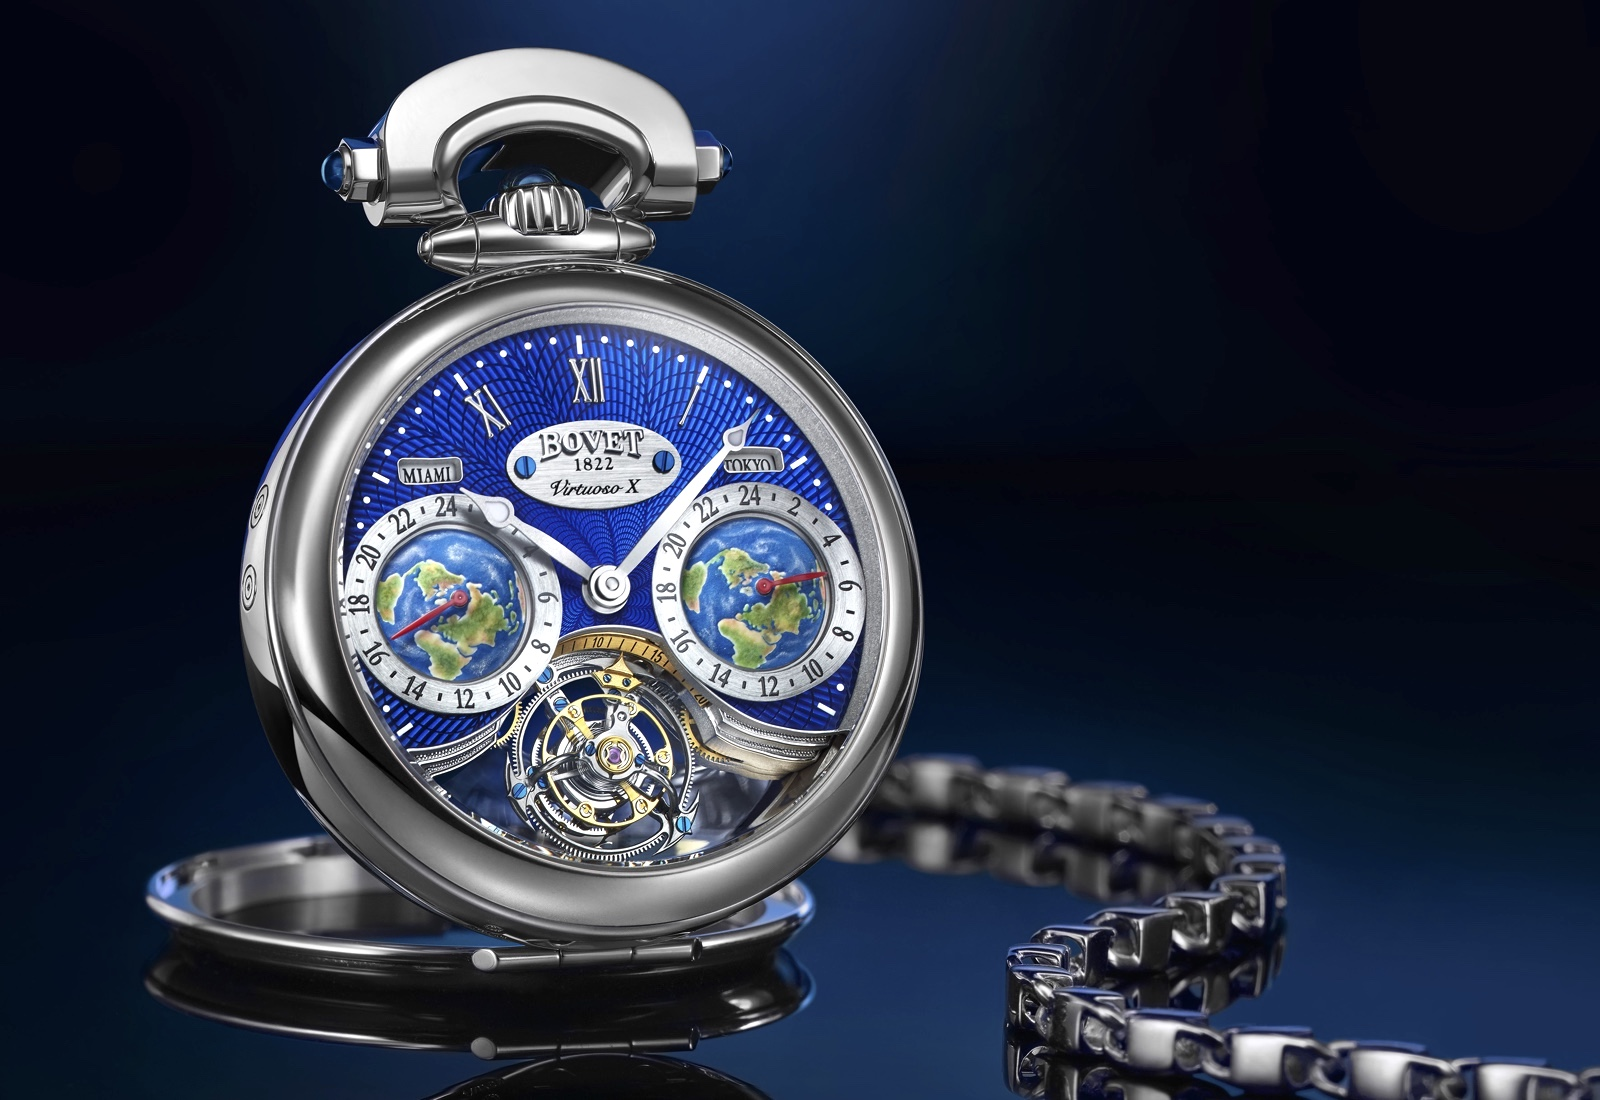 Bovet 1822 Tourbillon Virtuoso X